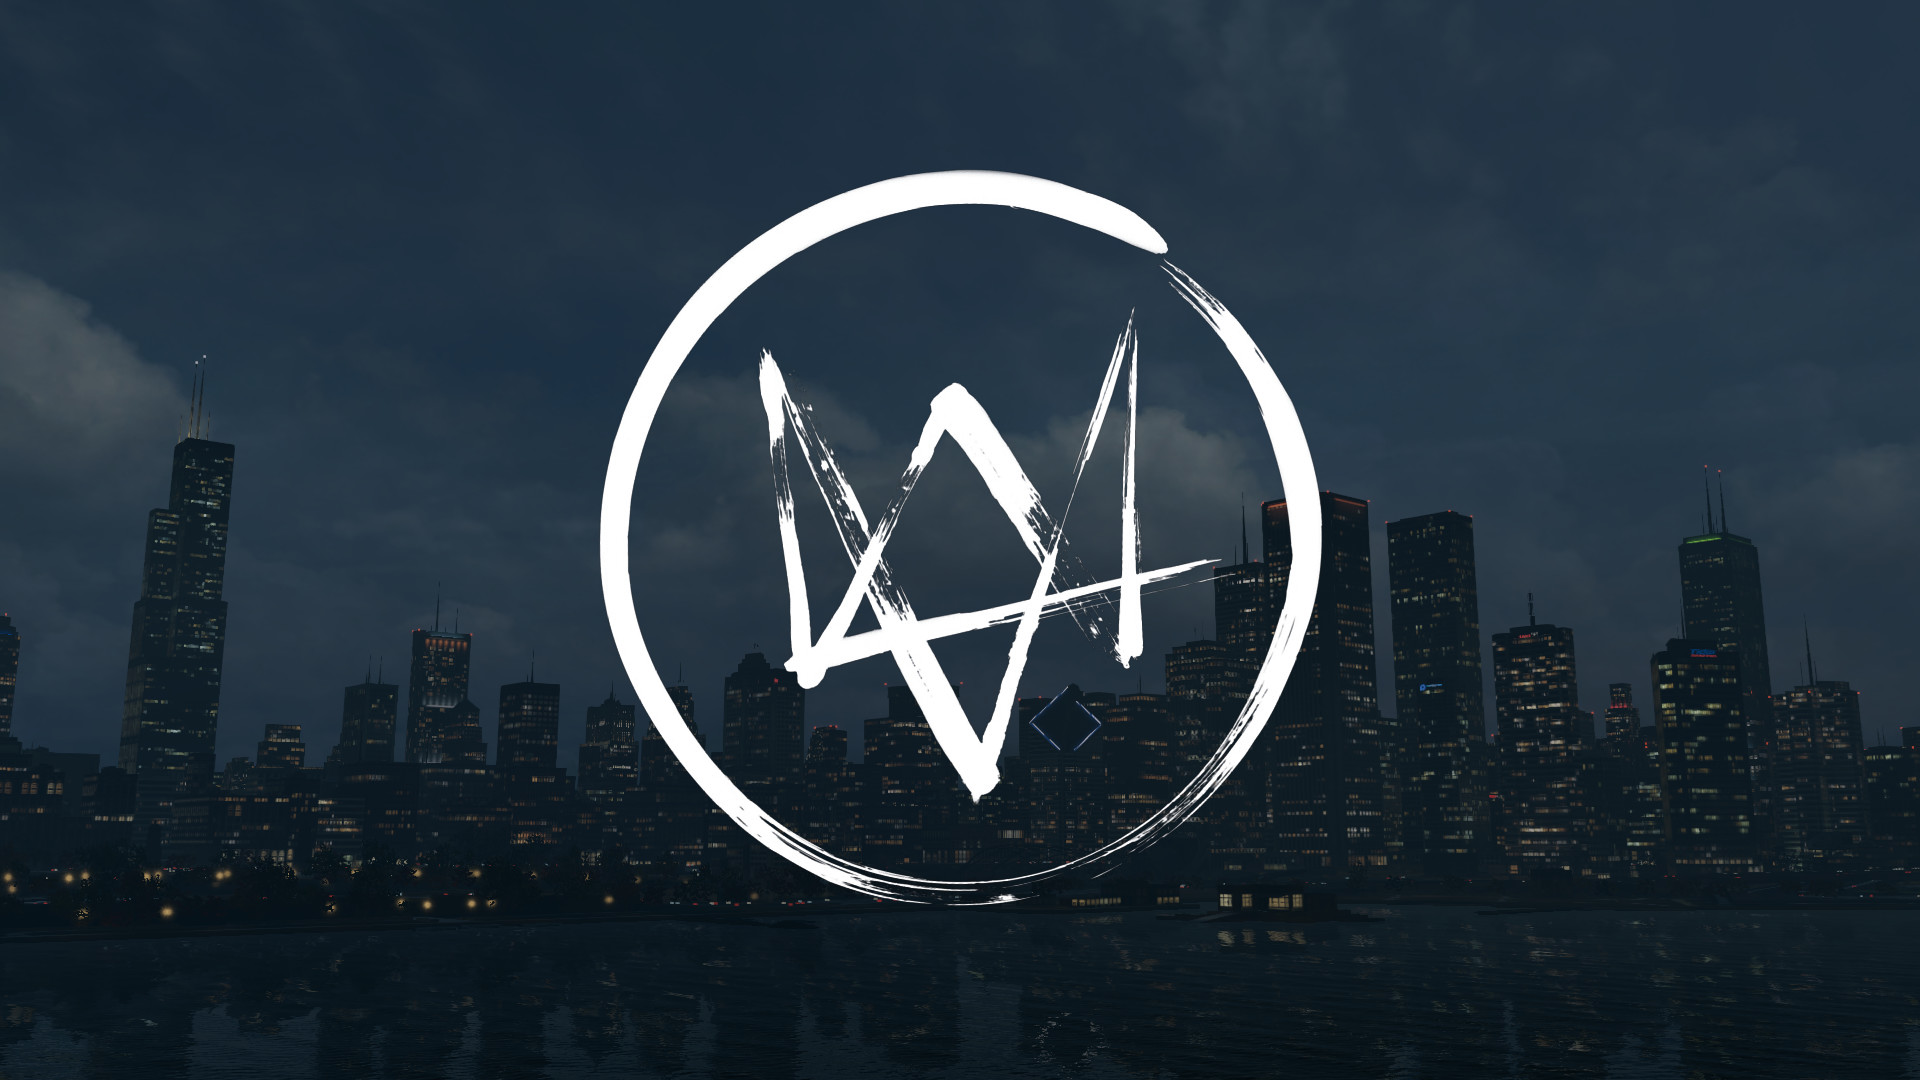 Watch Dogs Wallpapers 77 Images